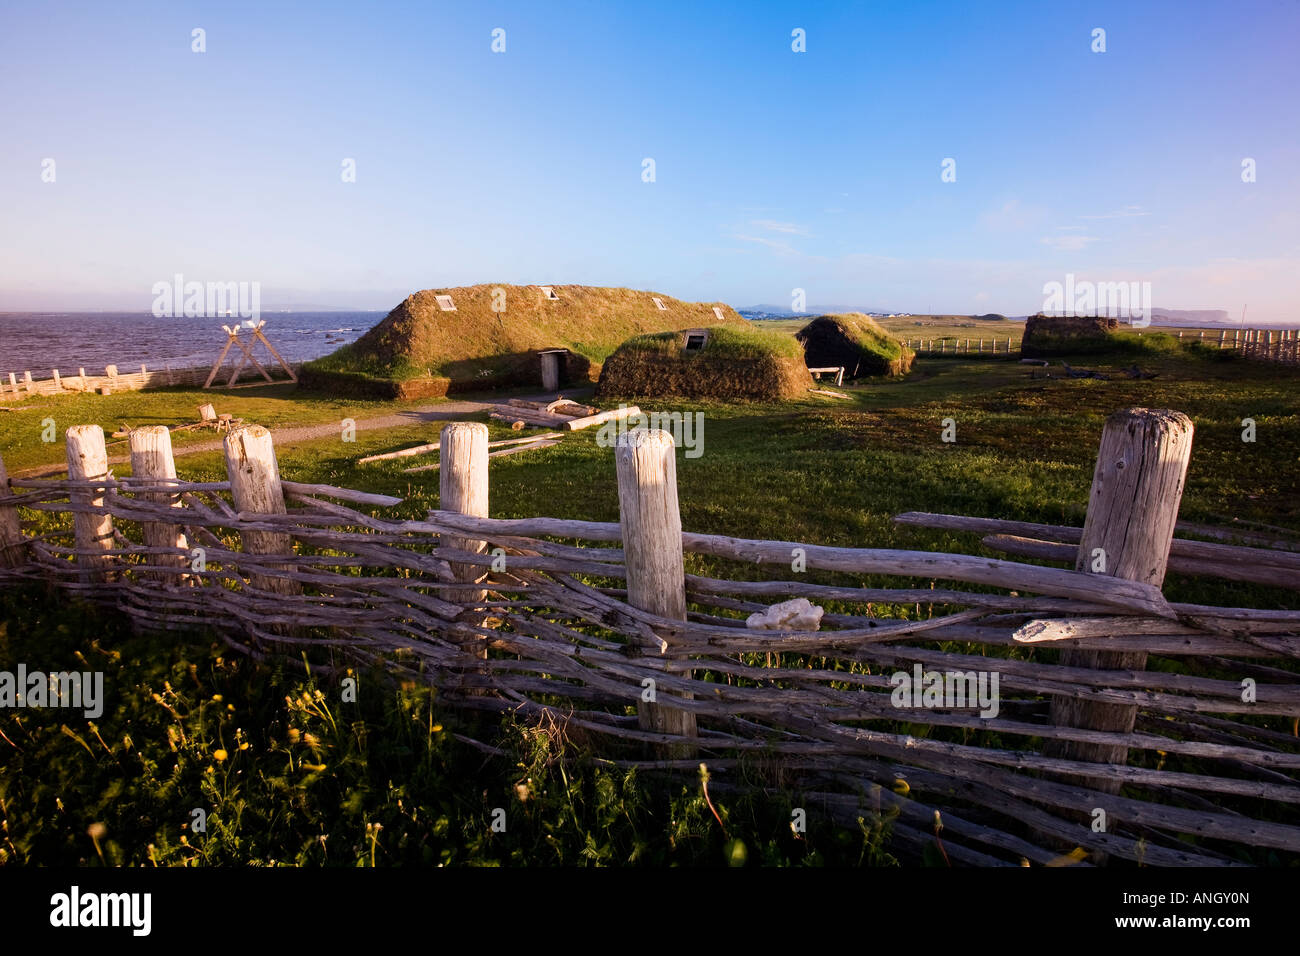 Fence and reconstructed Norse buildings at the L'Anse aux Meadows National Historic Site of Canada, Newfoundland - Stock Image